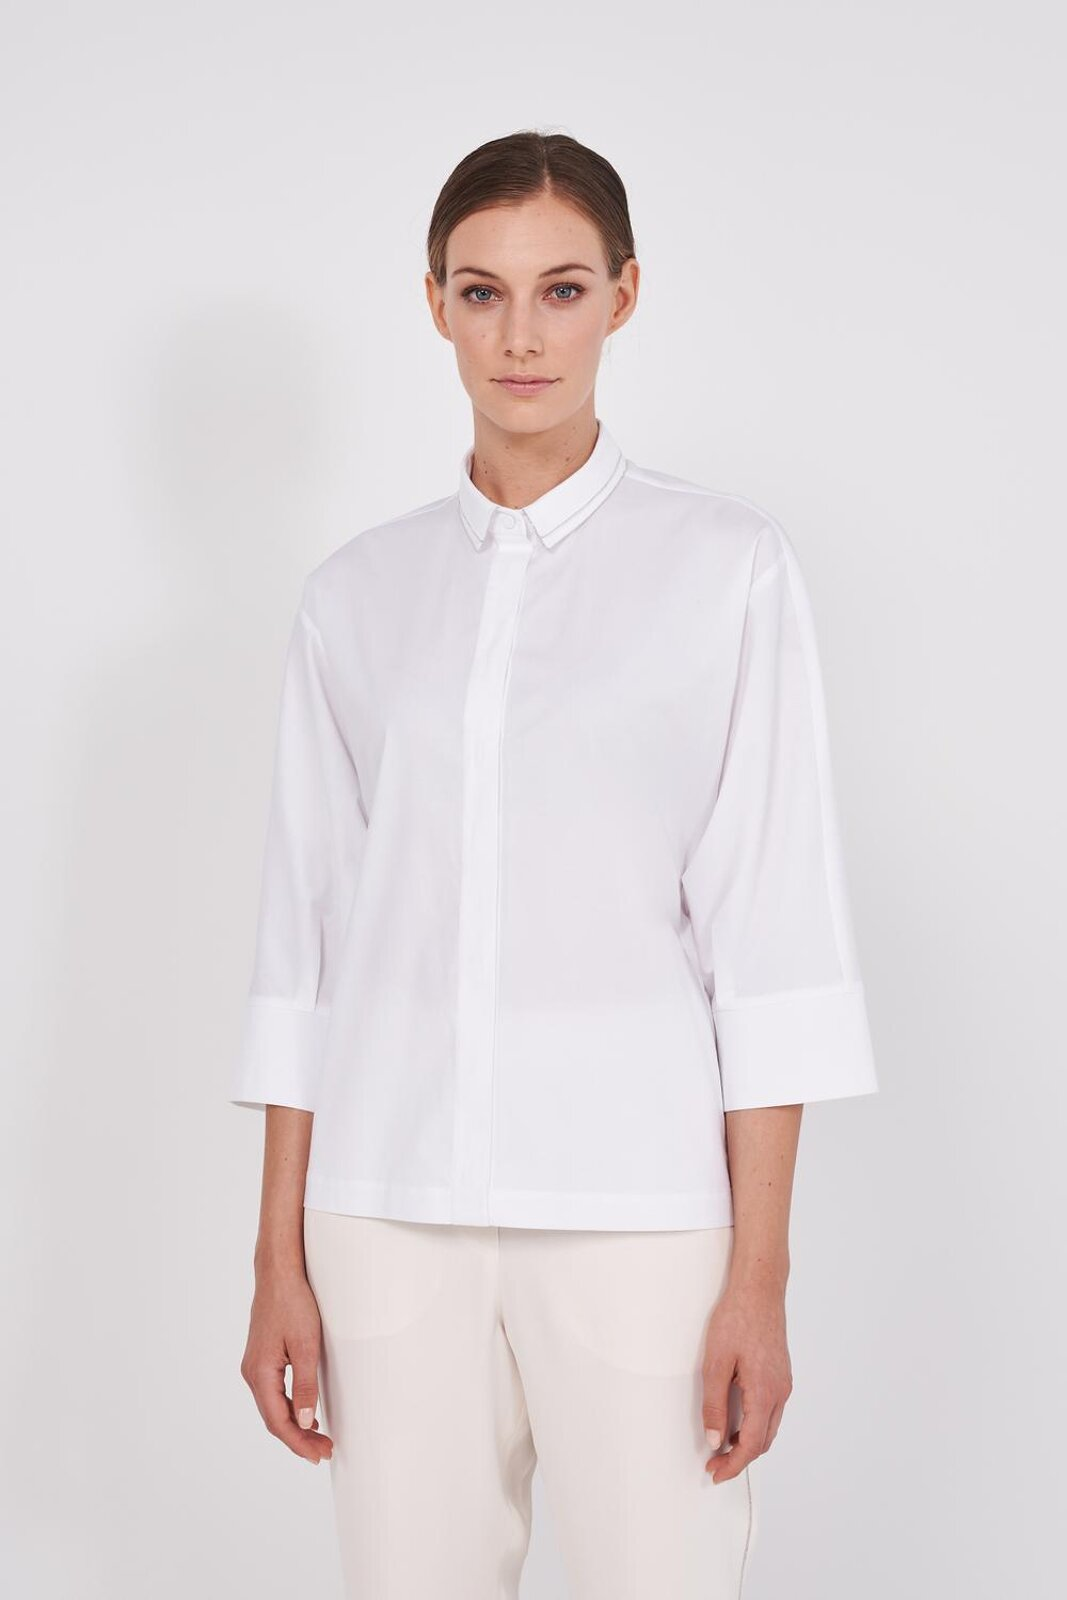 Slightly Stretch Pure Cotton Shirt With 3/4 Sleeve. Double collar edged with metal lights, wide sleeves, front closure with hidden buttons. Wide fit. - Peserico